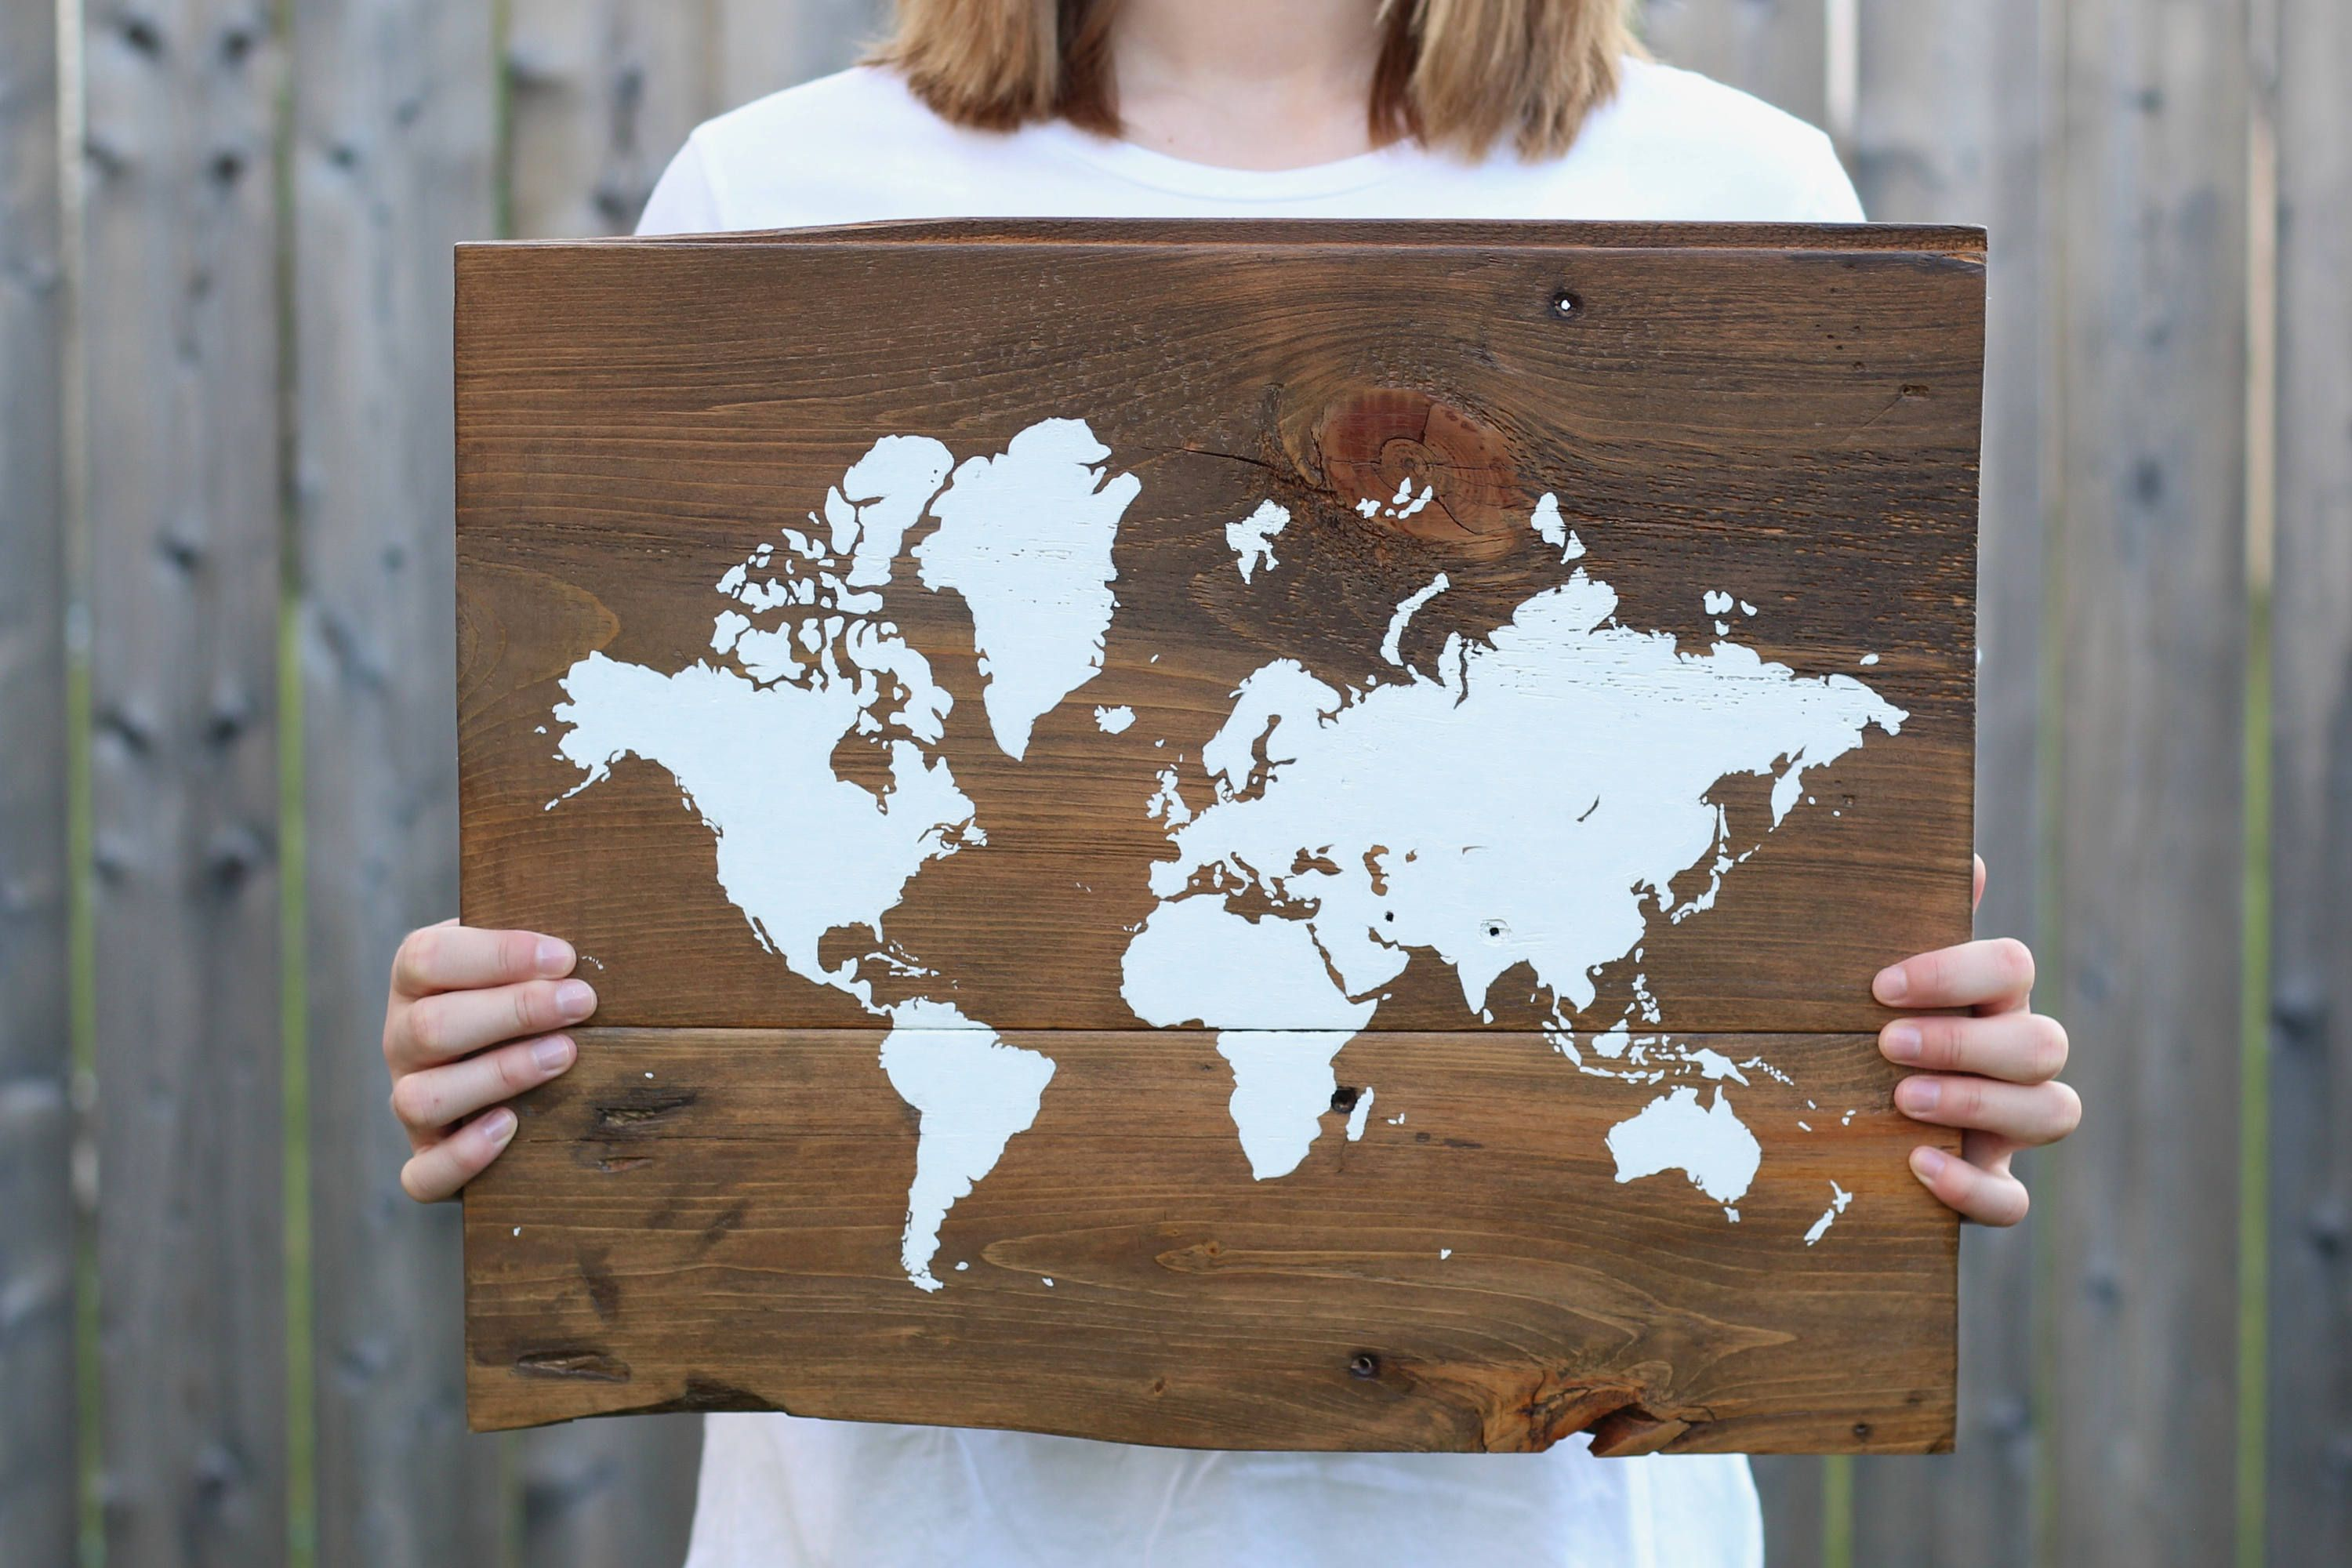 World map on wood rustic wall decor rustic world map map on world map on wood rustic wall decor rustic world map map on reclaimed gumiabroncs Choice Image